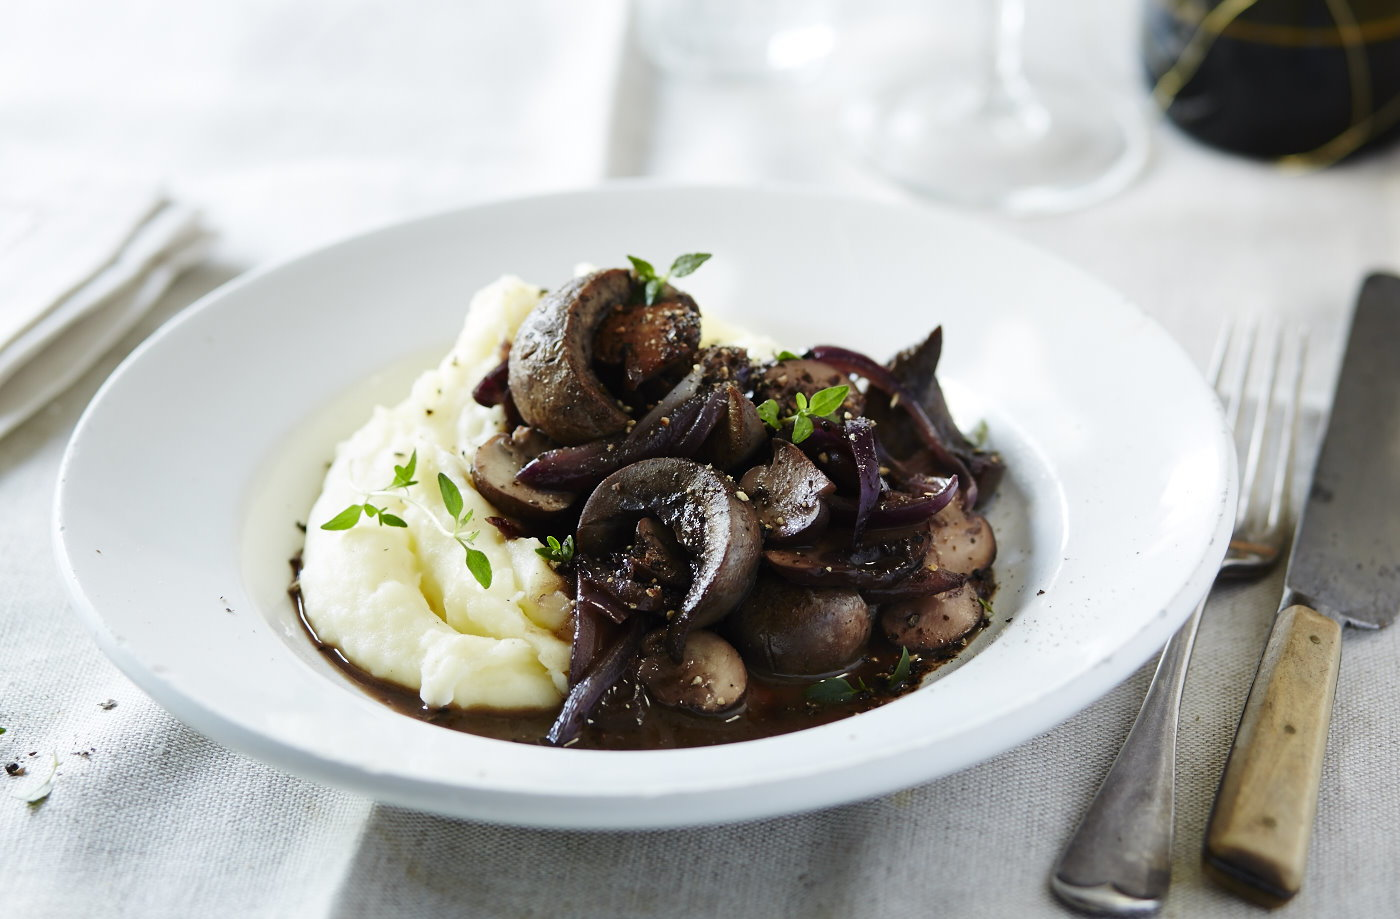 Kidneys in red wine and mushroom sauce recipe